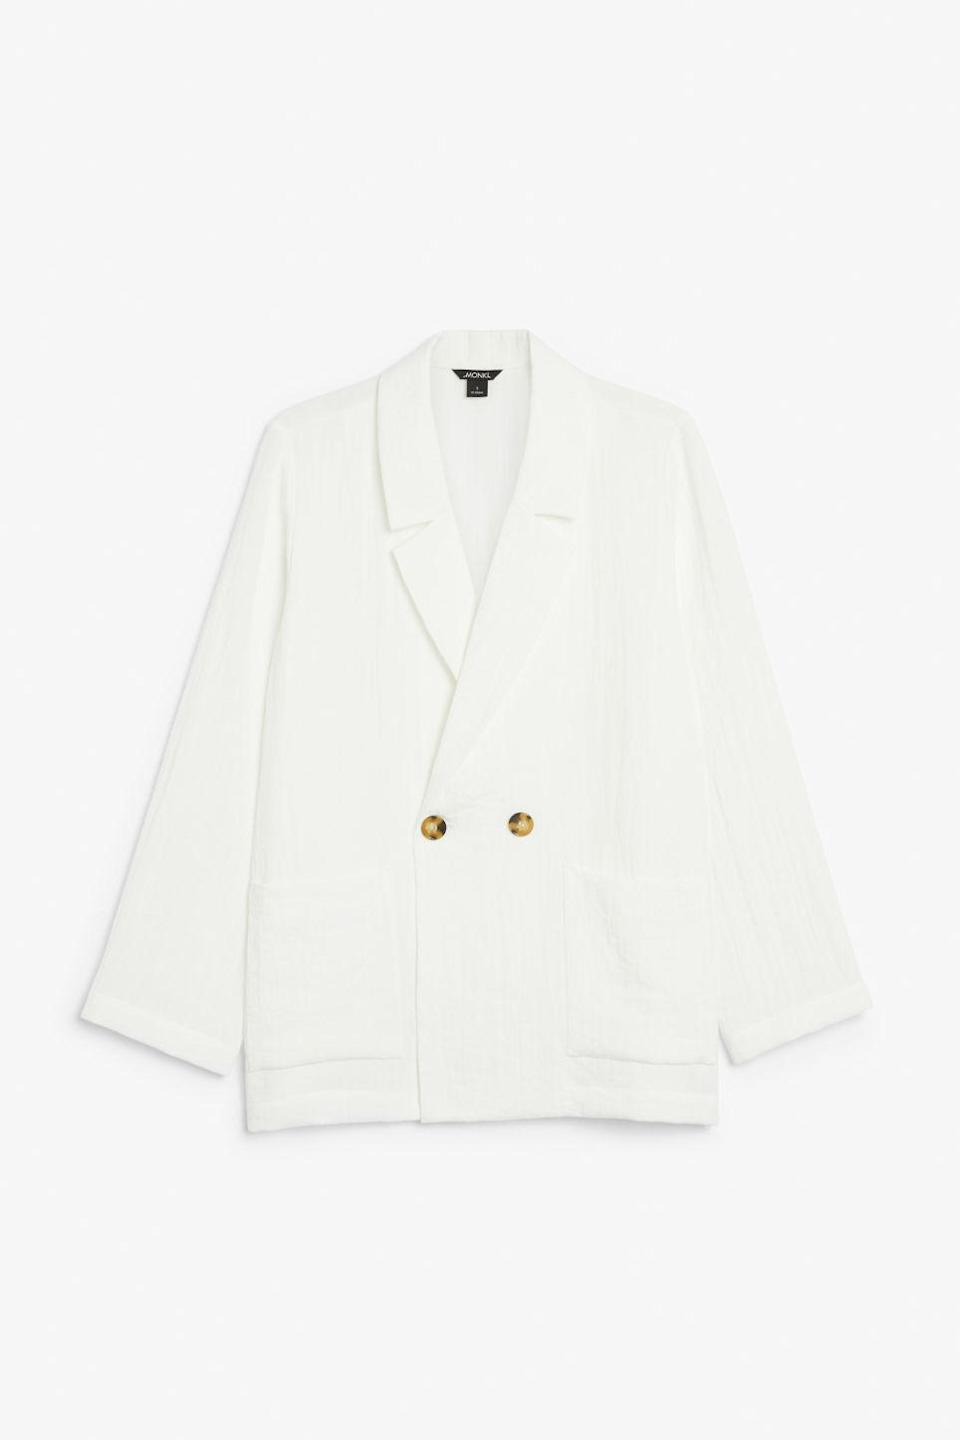 """<p>Everyone needs a blazer in their wardrobe to throw on over a tee and jeans for an instantly 'done' look. We really like this light and airy white version by H&M little sister brand Monki. <a rel=""""nofollow noopener"""" href=""""https://www.monki.com/en_gbp/clothing/coats-jackets/product.double-breasted-blazer-white.0616073001.html"""" target=""""_blank"""" data-ylk=""""slk:Buy here."""" class=""""link rapid-noclick-resp"""">Buy here.</a> </p>"""